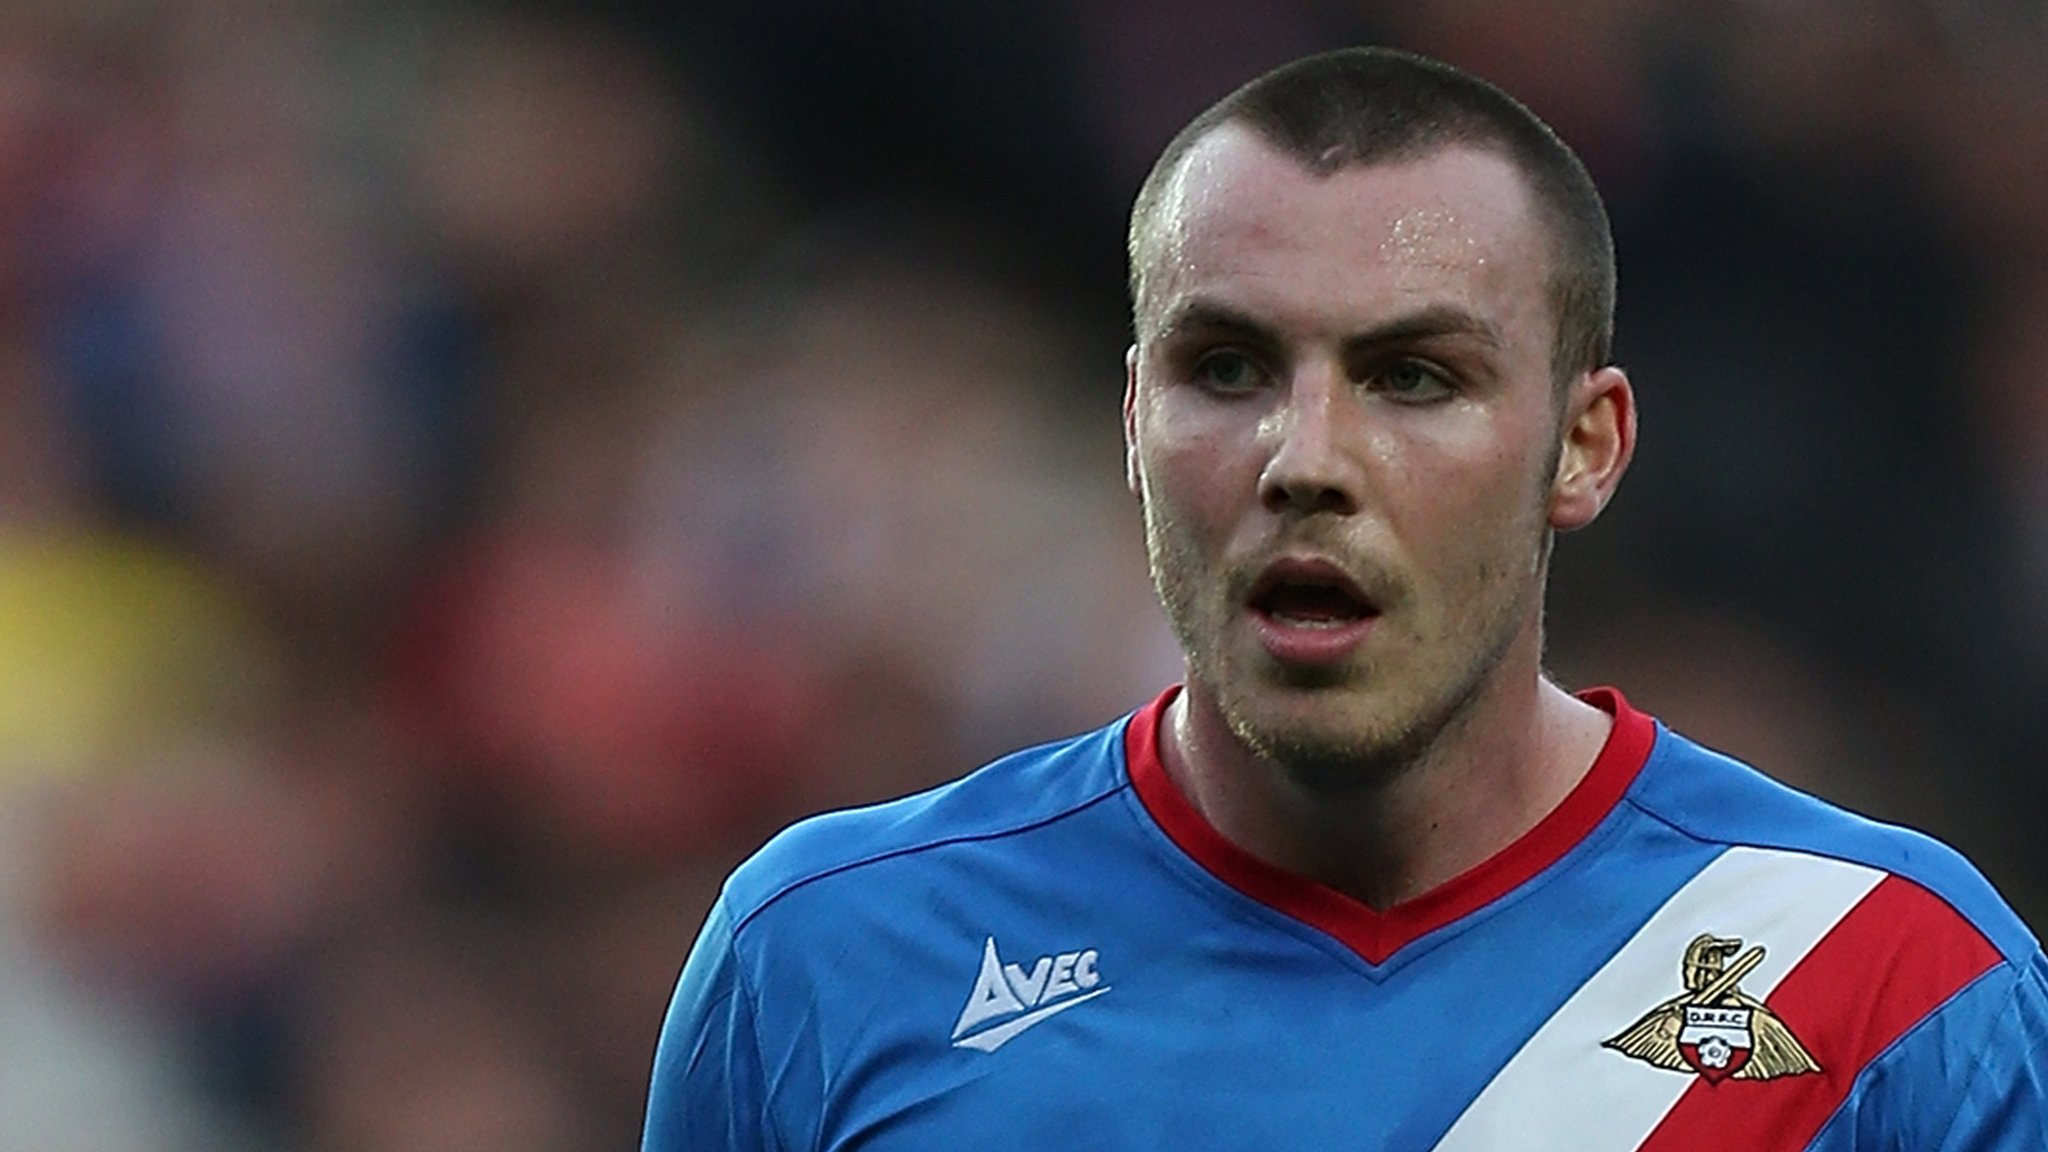 Luke McCullough: Tranmere Rovers sign midfielder on loan from Doncaster Rovers